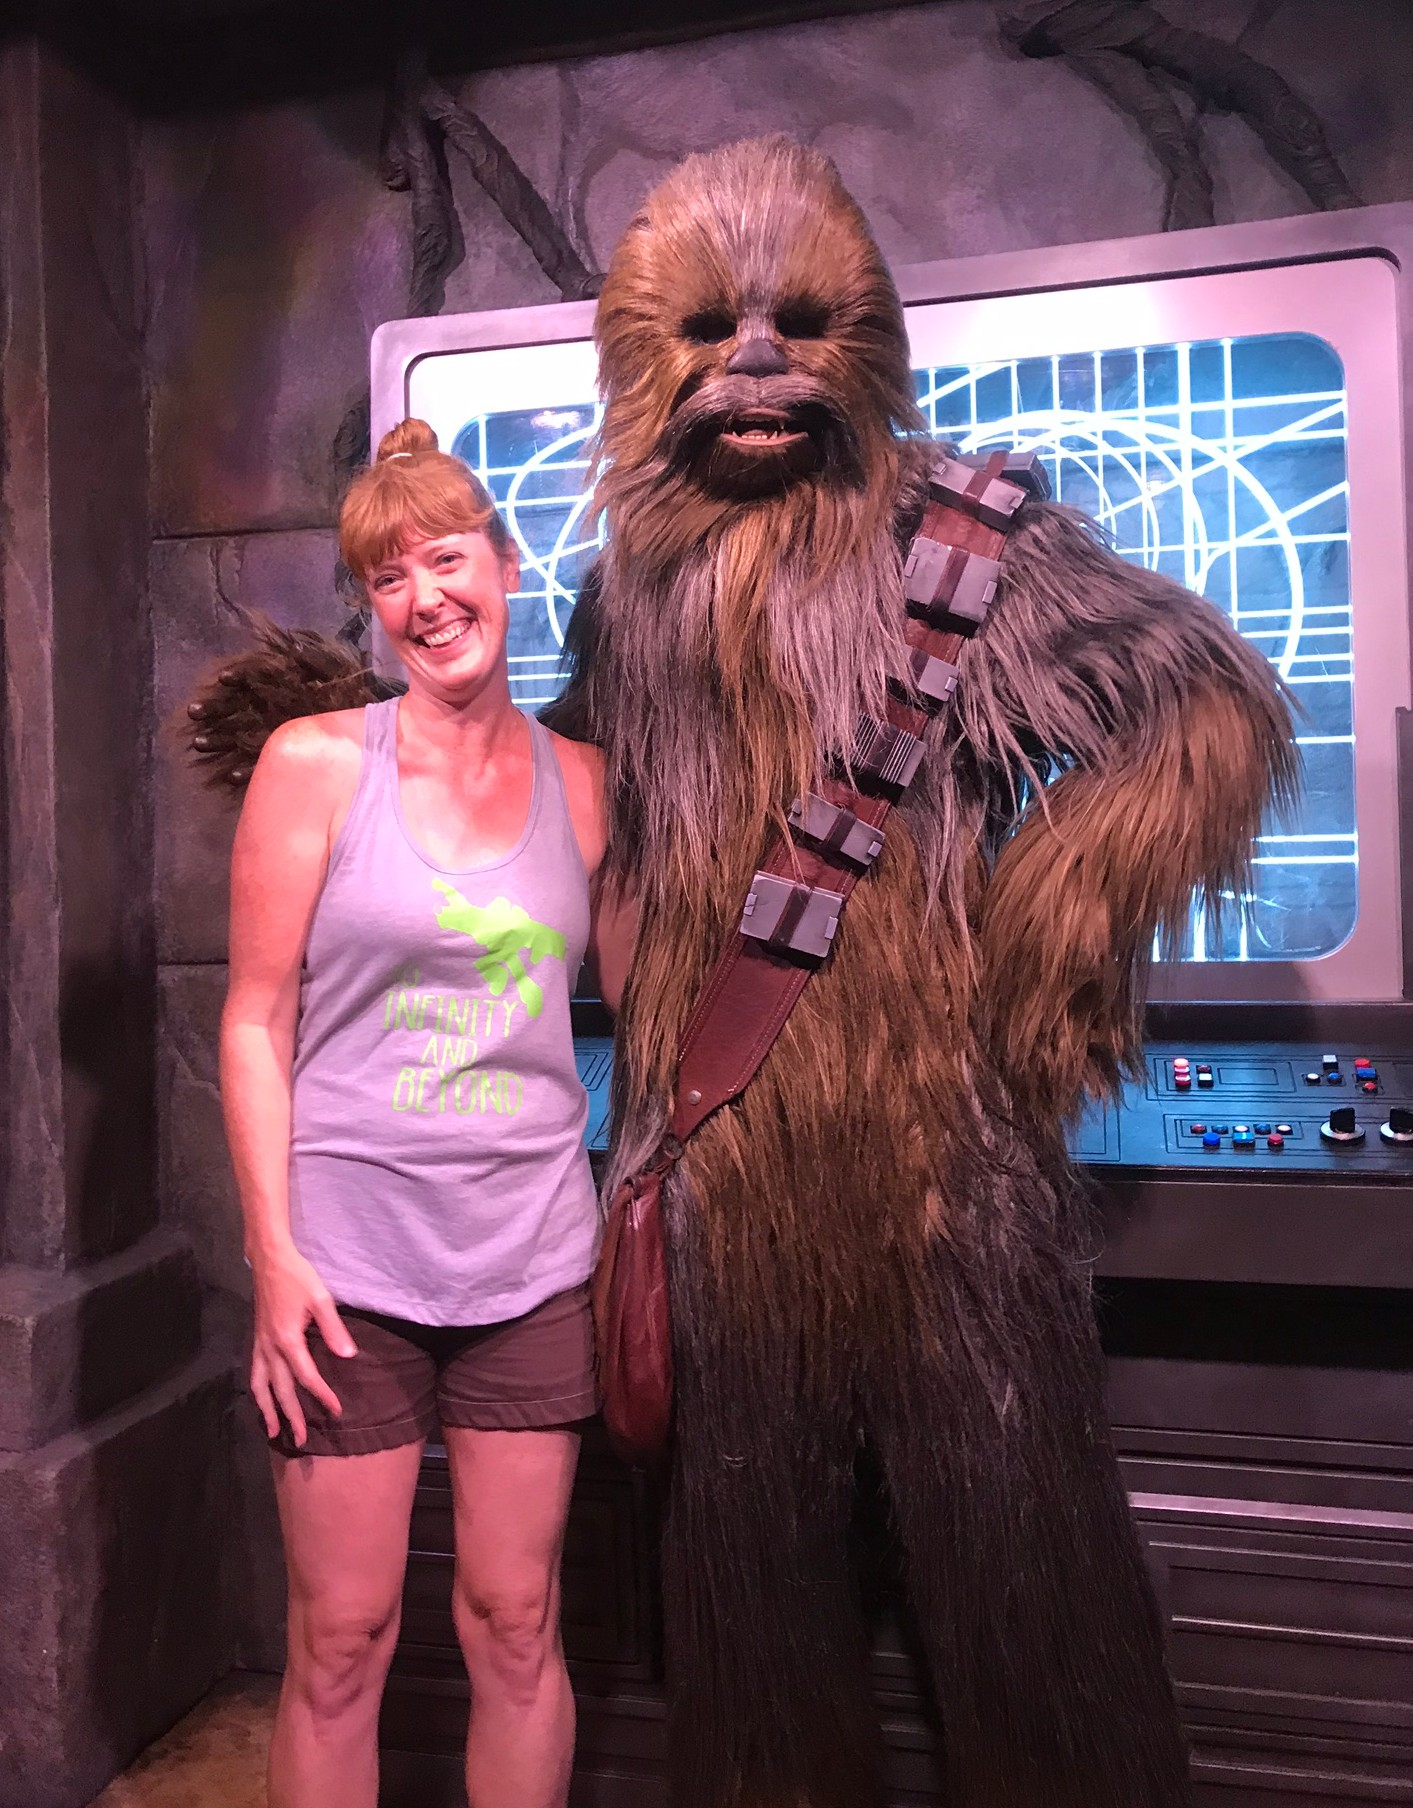 woman posing with disney character chewbaca